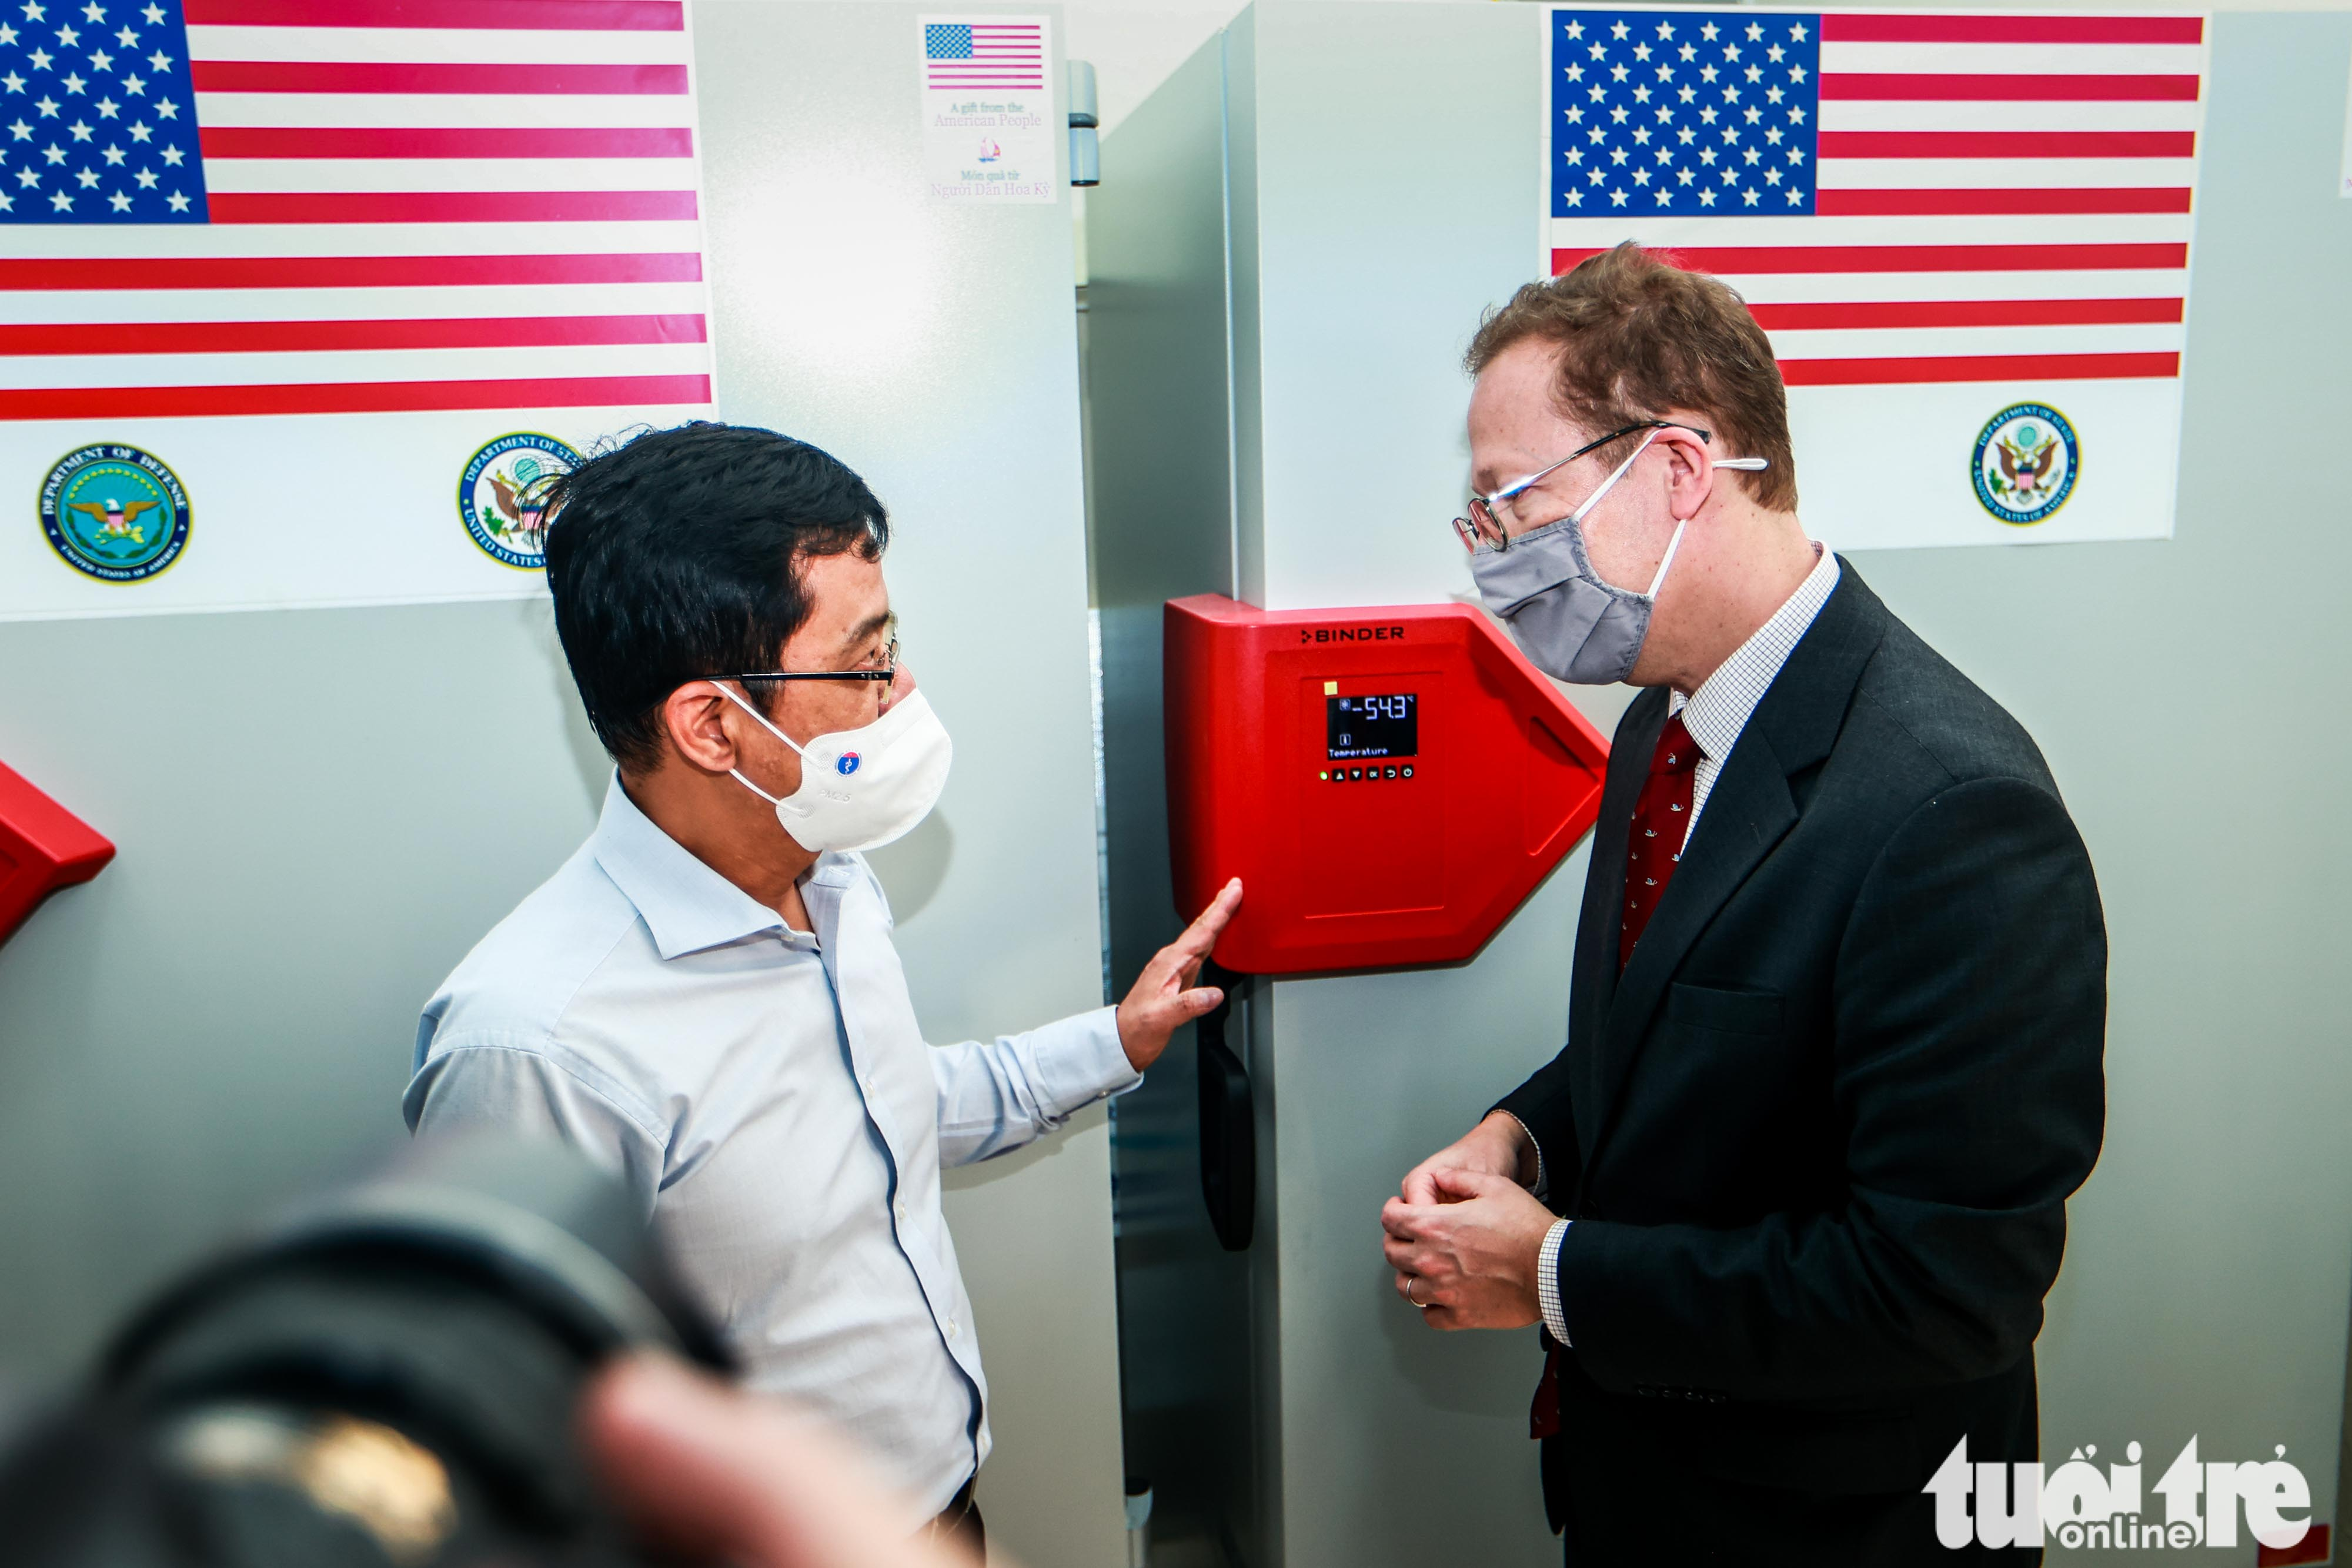 Christopher Klein, Chargé d'Affaires of the U.S. Embassy Hanoi, talks with Dang Duc Anh, head of the National Institute of Hygiene and Epidemiology, October 12, 2021. Photo: Nguyen Khanh / Tuoi Tre